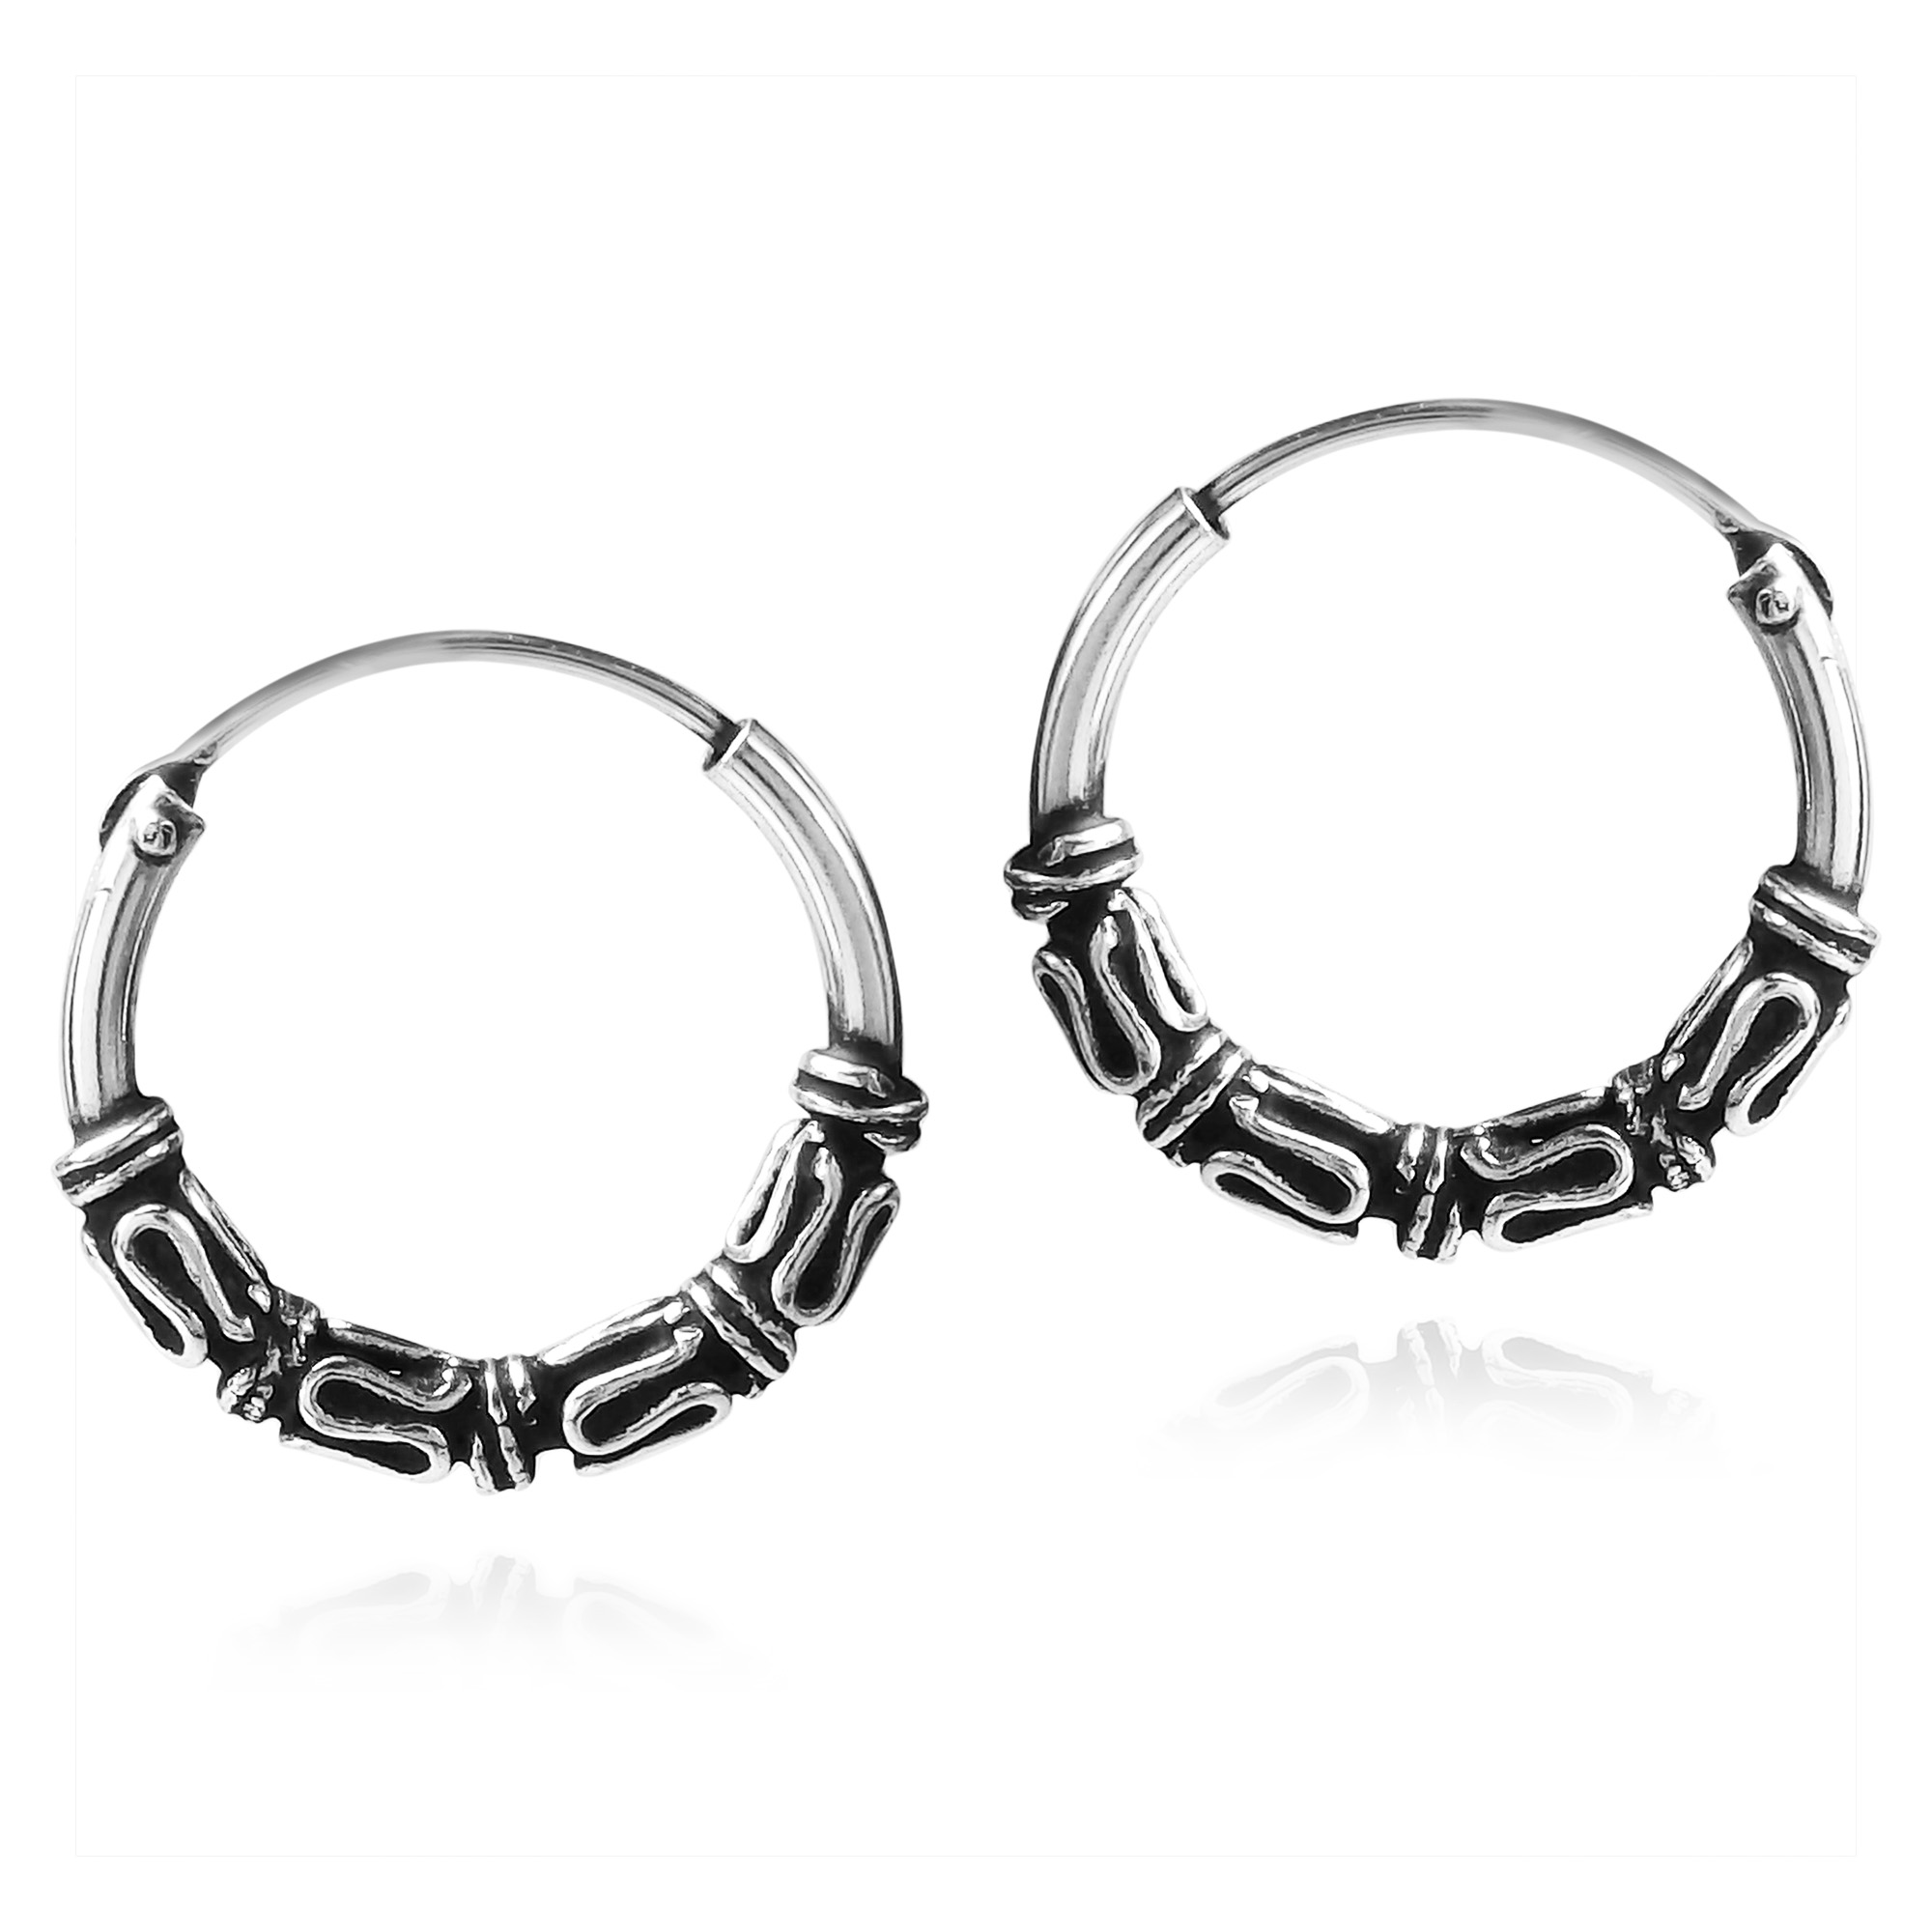 K Jai Handcrafted These Exotic Sterling Silver Earrings The Hoop Showcase A Balinese Inspired Tribal Design Since Can Go